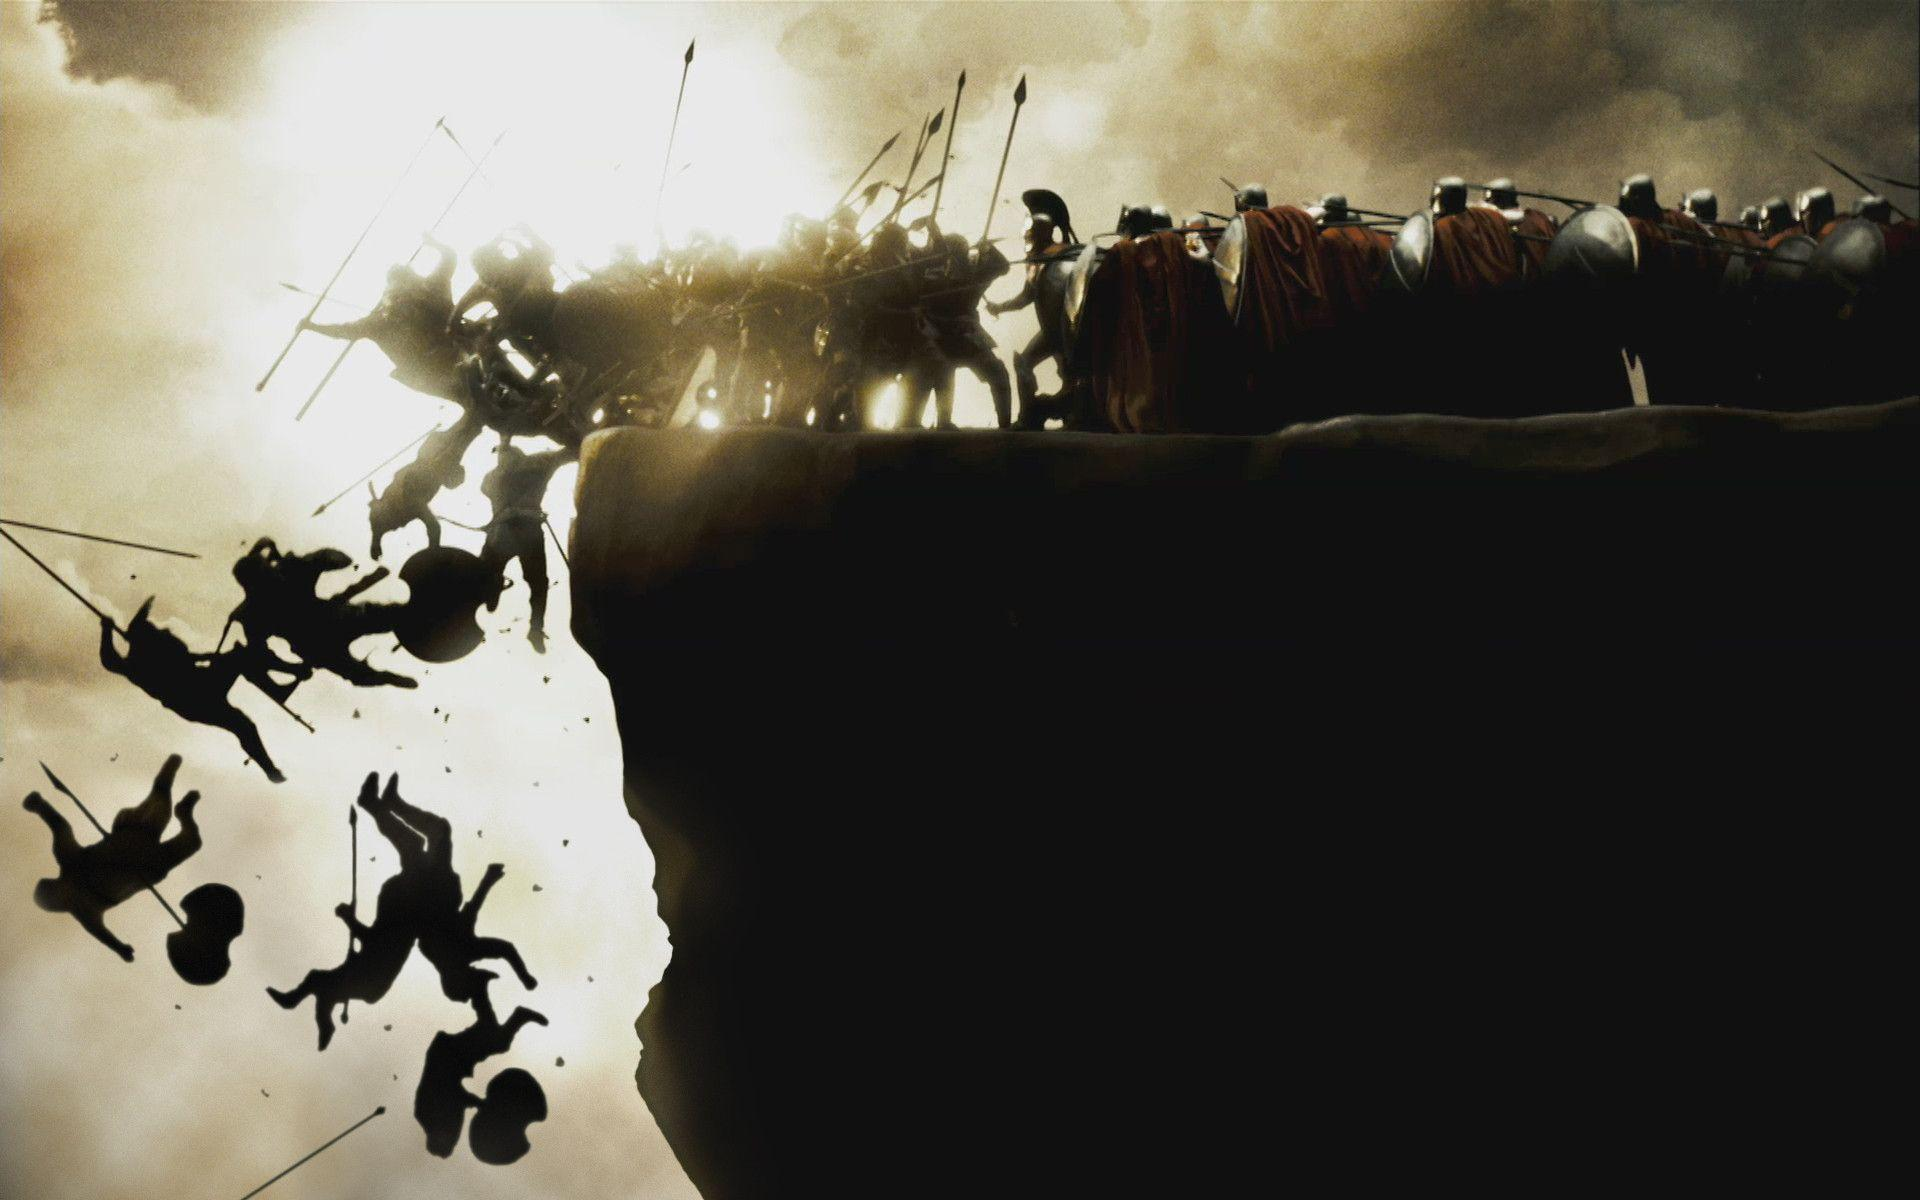 300 spartans wallpaper wallpapers - photo #1